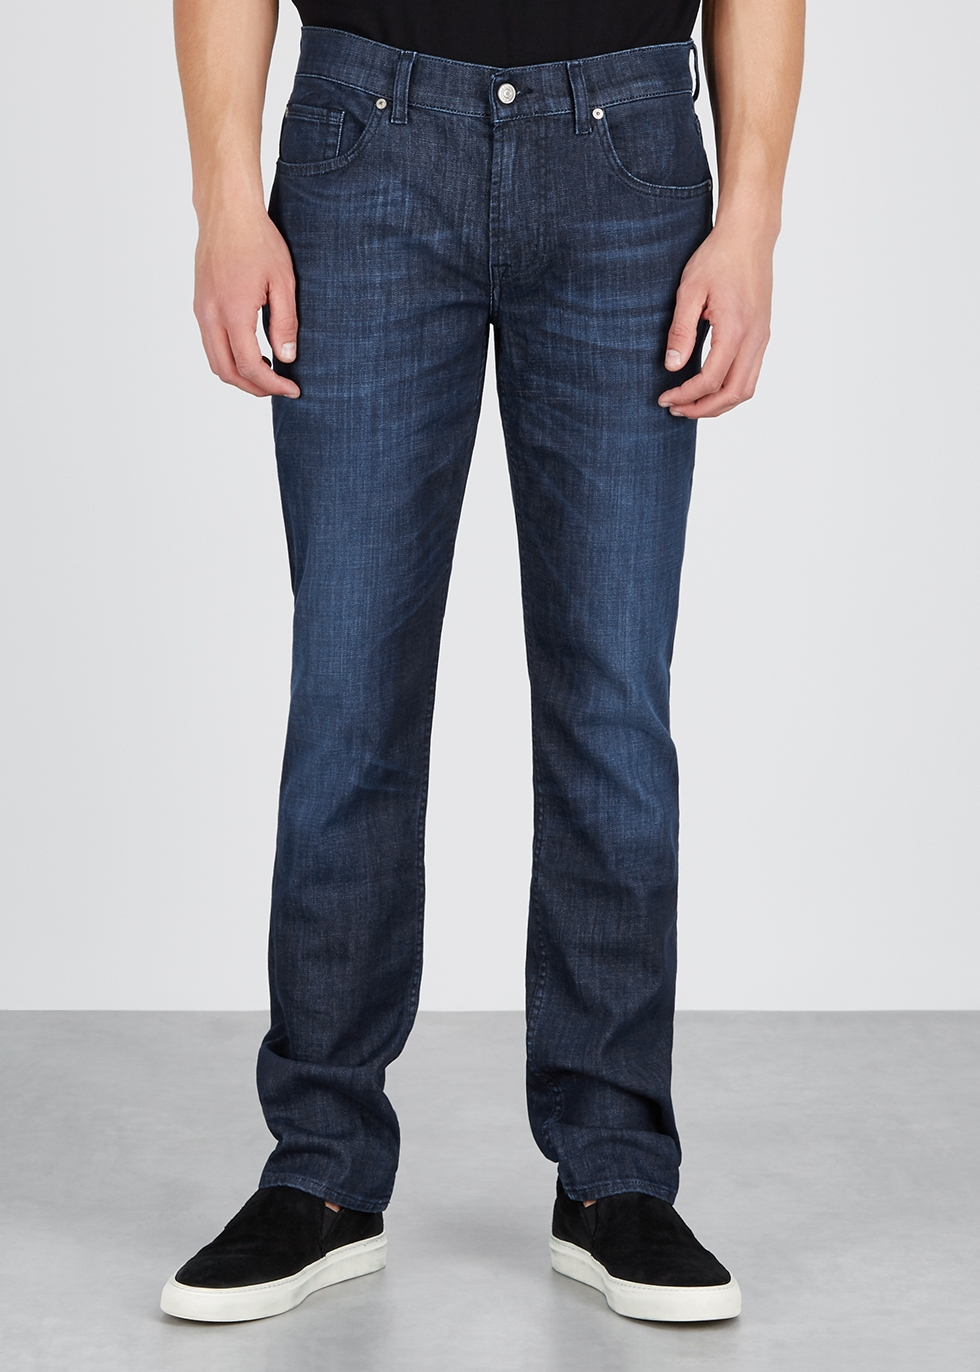 Slimmy Weightless slim-leg jeans - 7 For All Mankind